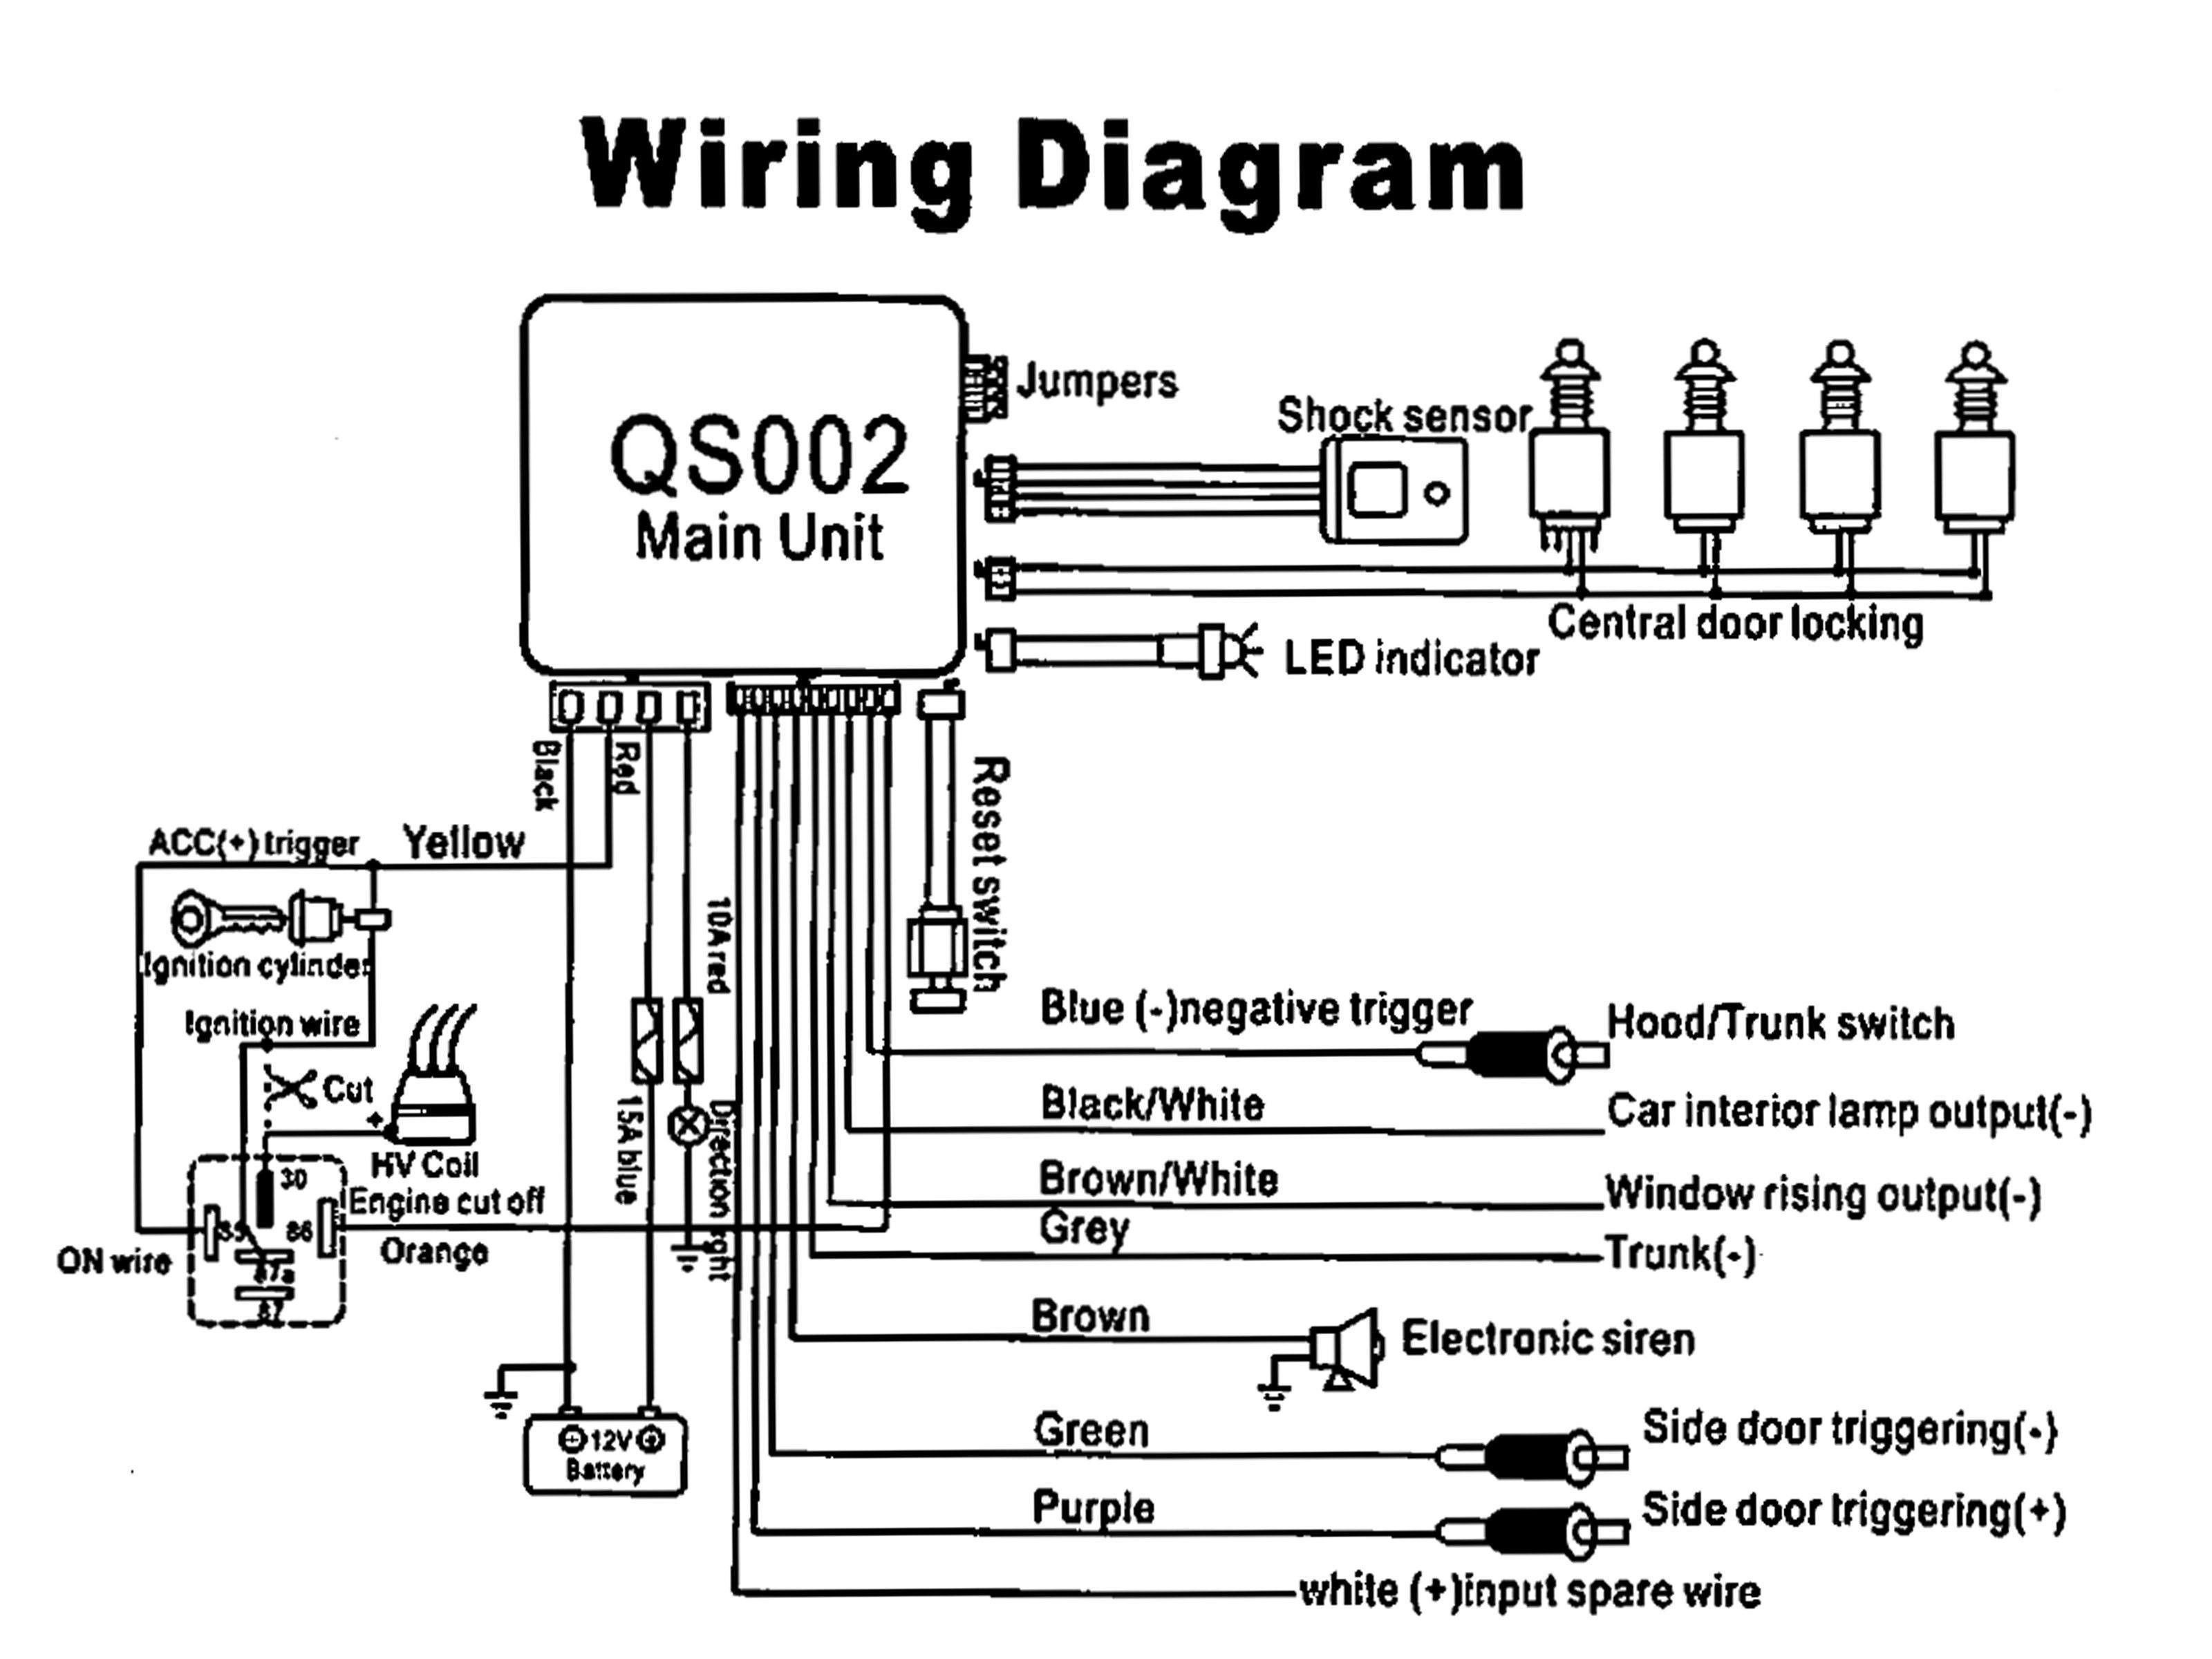 New Wiring Diagram Lincoln Town Car Car Alarm Alarm Systems For Home Wireless Home Security Systems